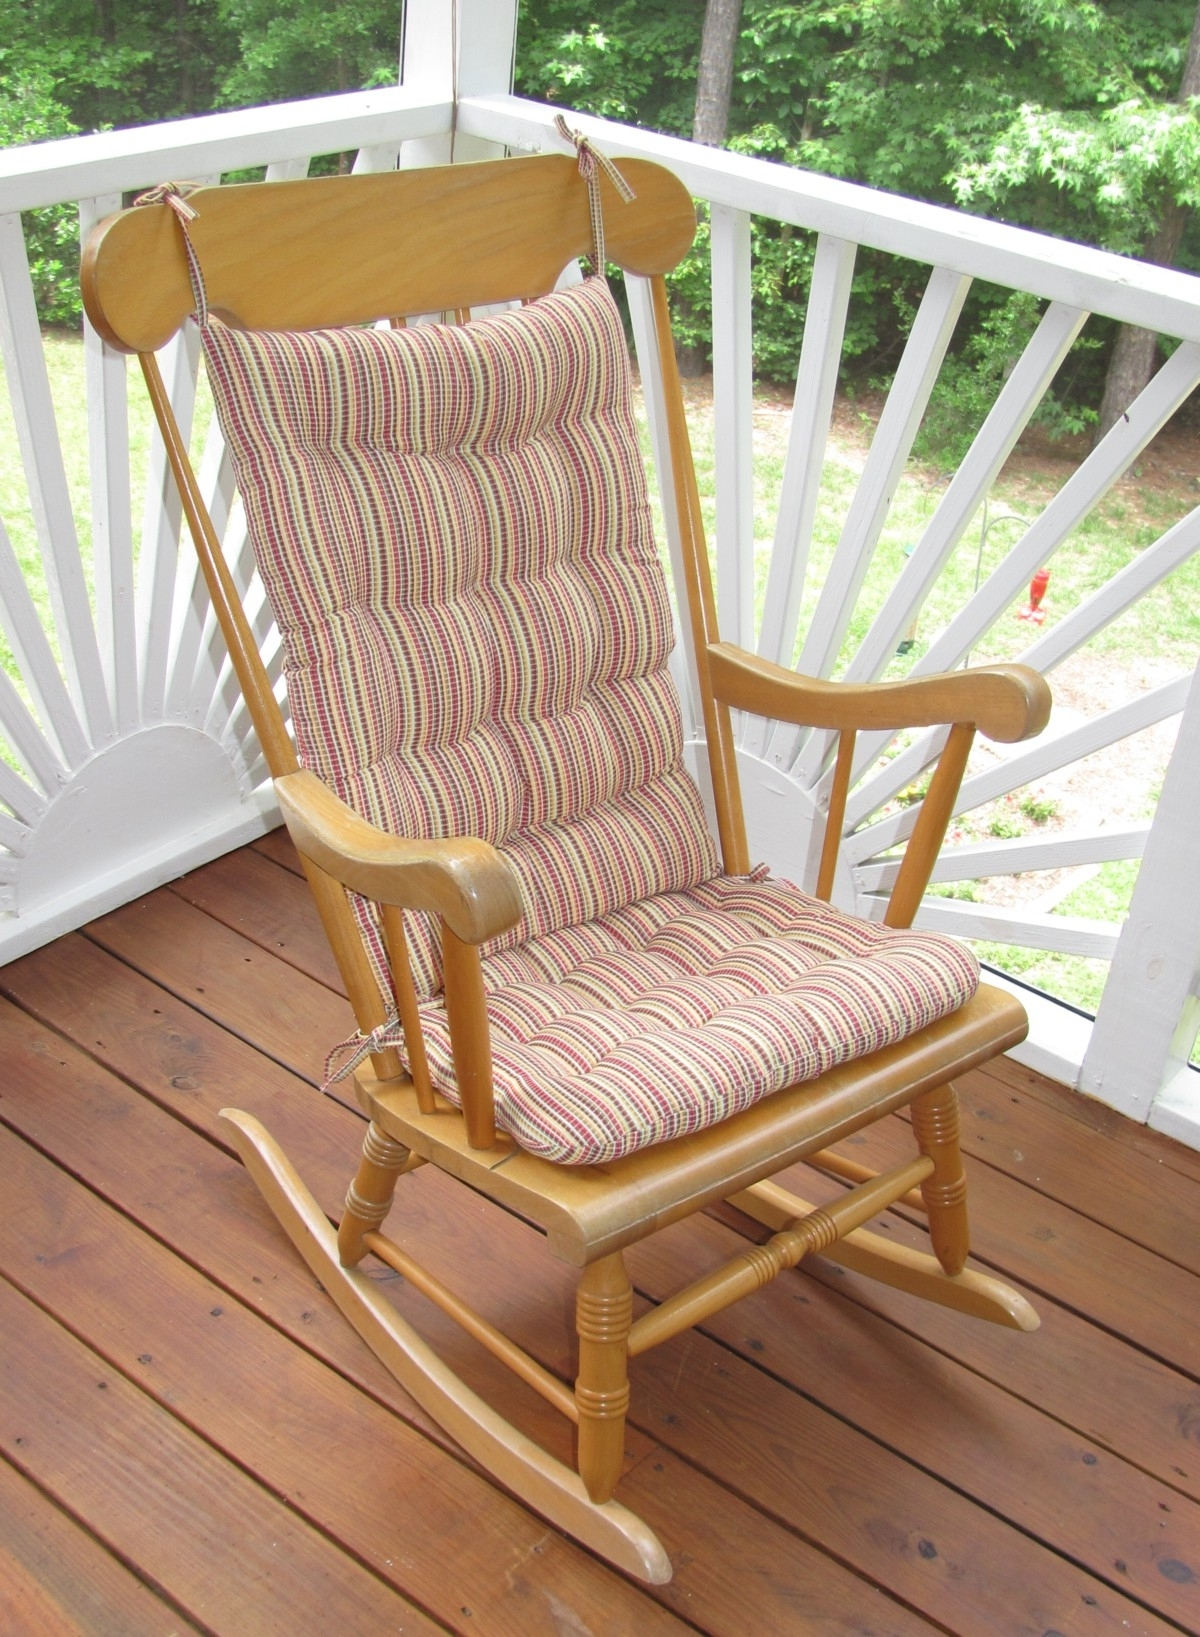 Outdoor Rocking Chair Cushions Type : Beautiful Outdoor Rocking Regarding 2018 Outdoor Rocking Chairs With Cushions (View 8 of 15)